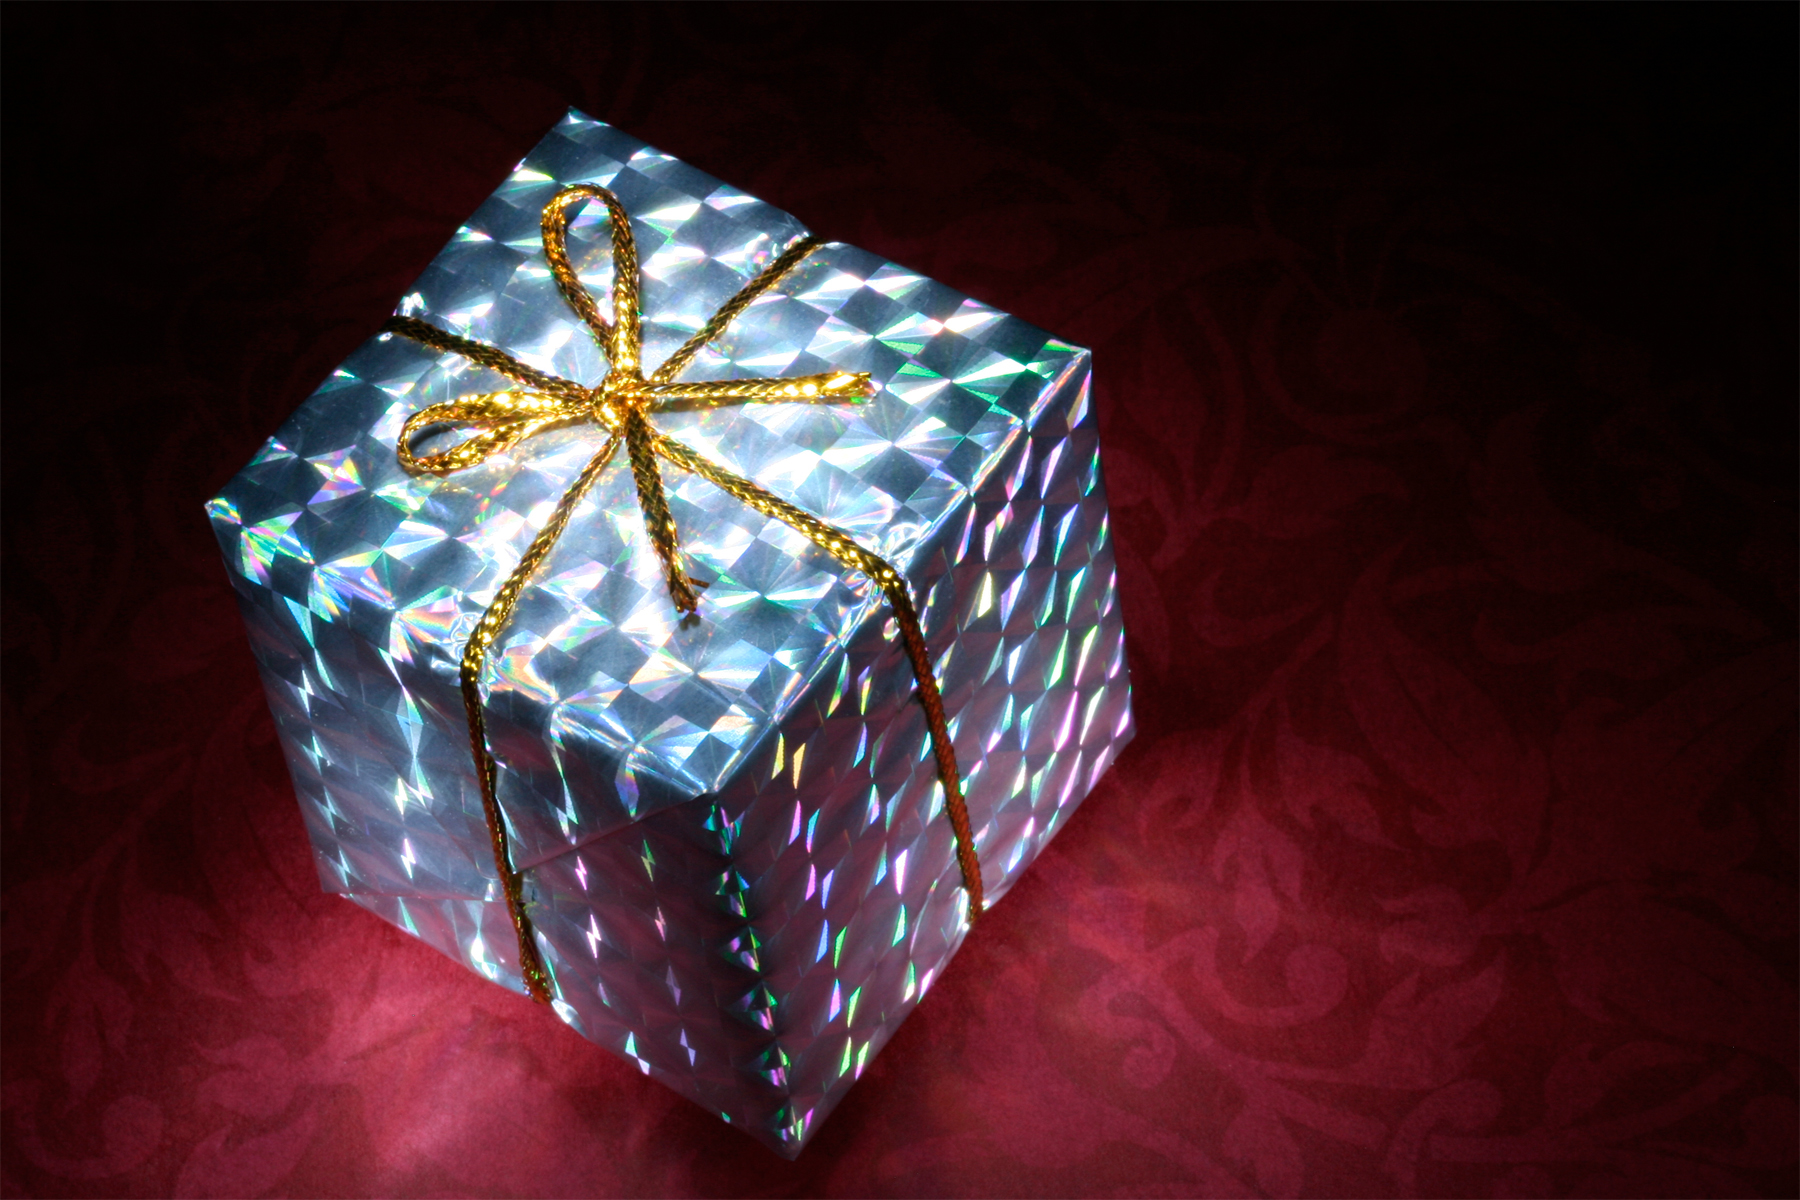 Glowing Gift Box, Black, Red, Light, Lights, HQ Photo